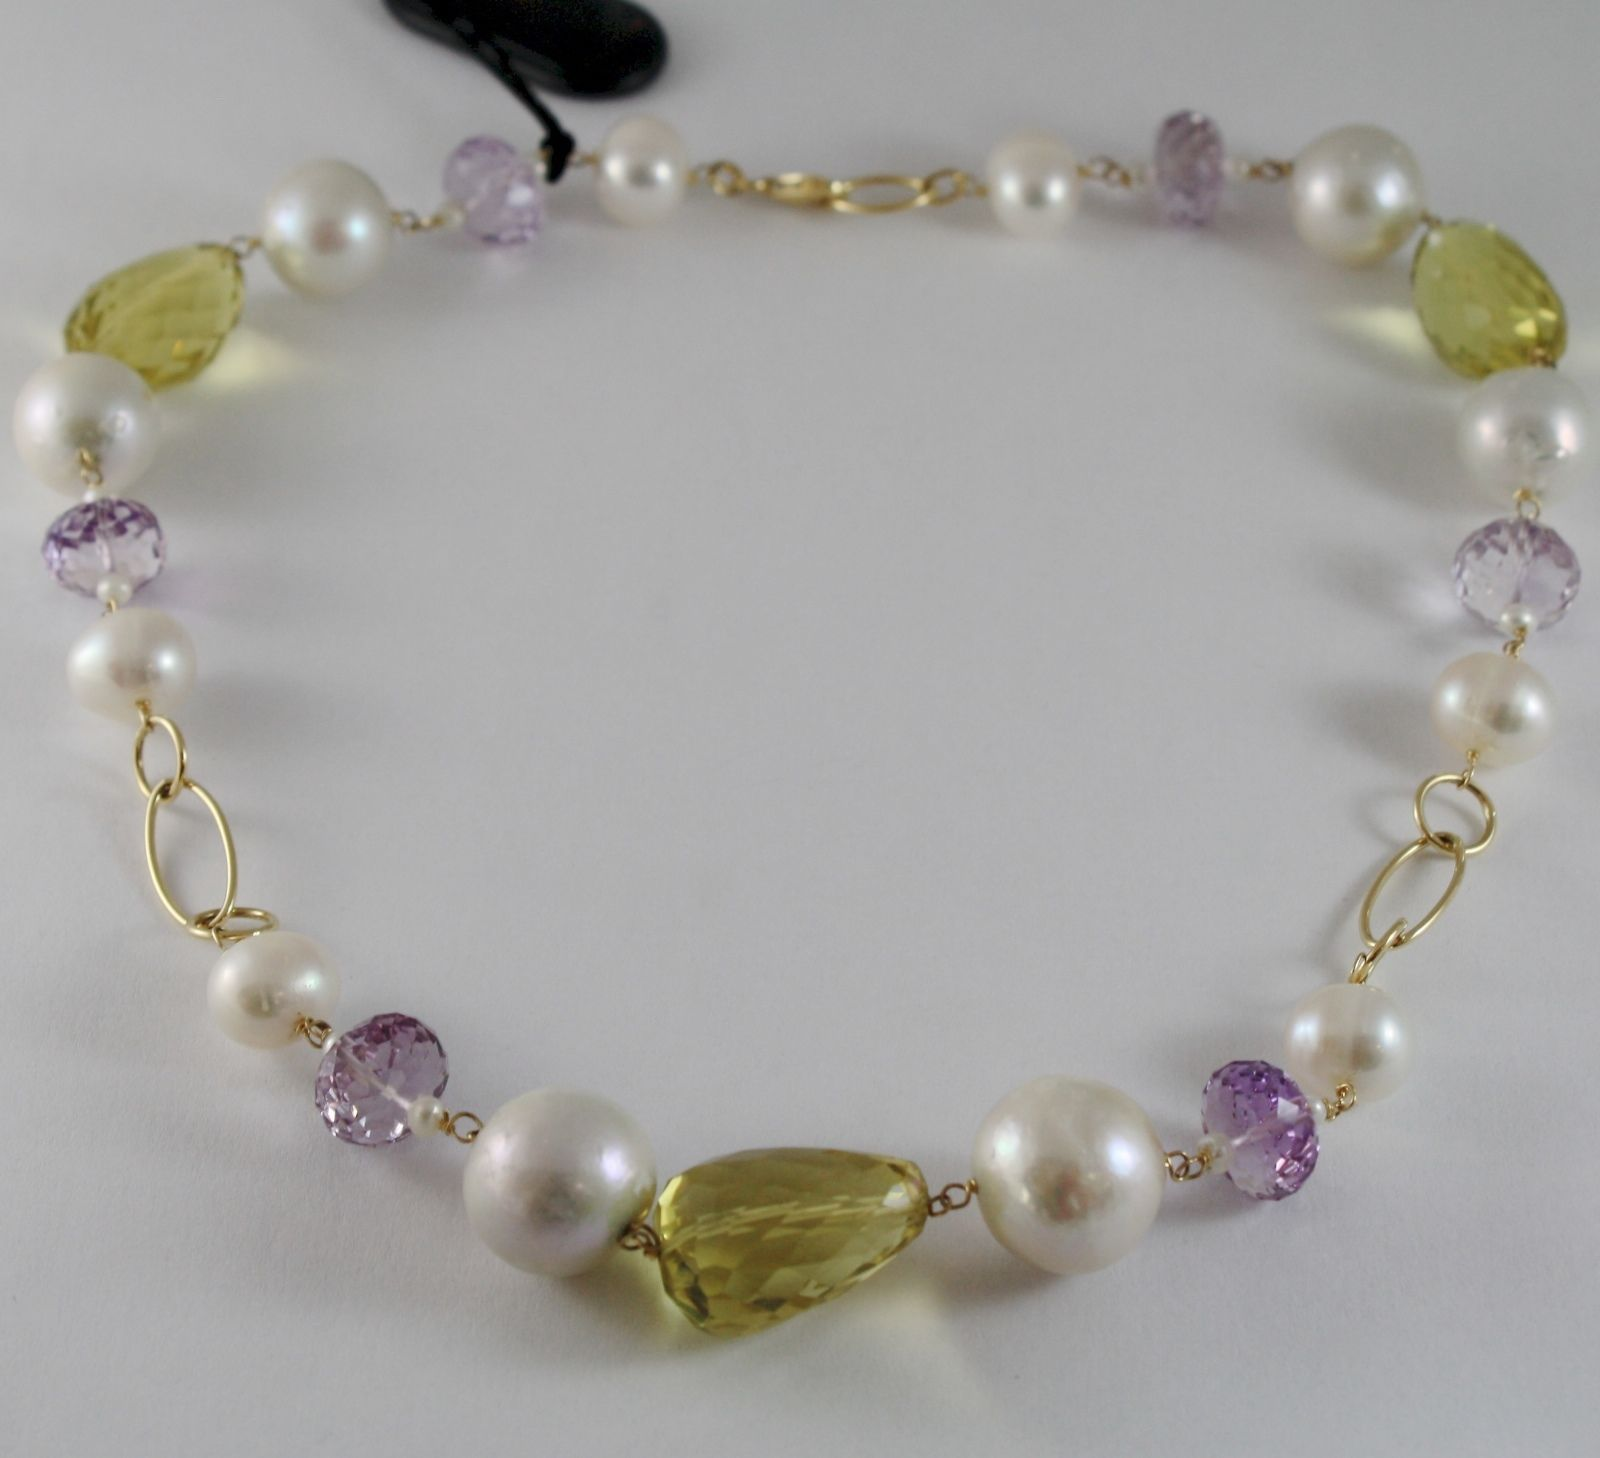 18K YELLOW GOLD NECKLACE BIG PEARLS CUSHION LEMON QUARTZ AMETHYST MADE IN ITALY